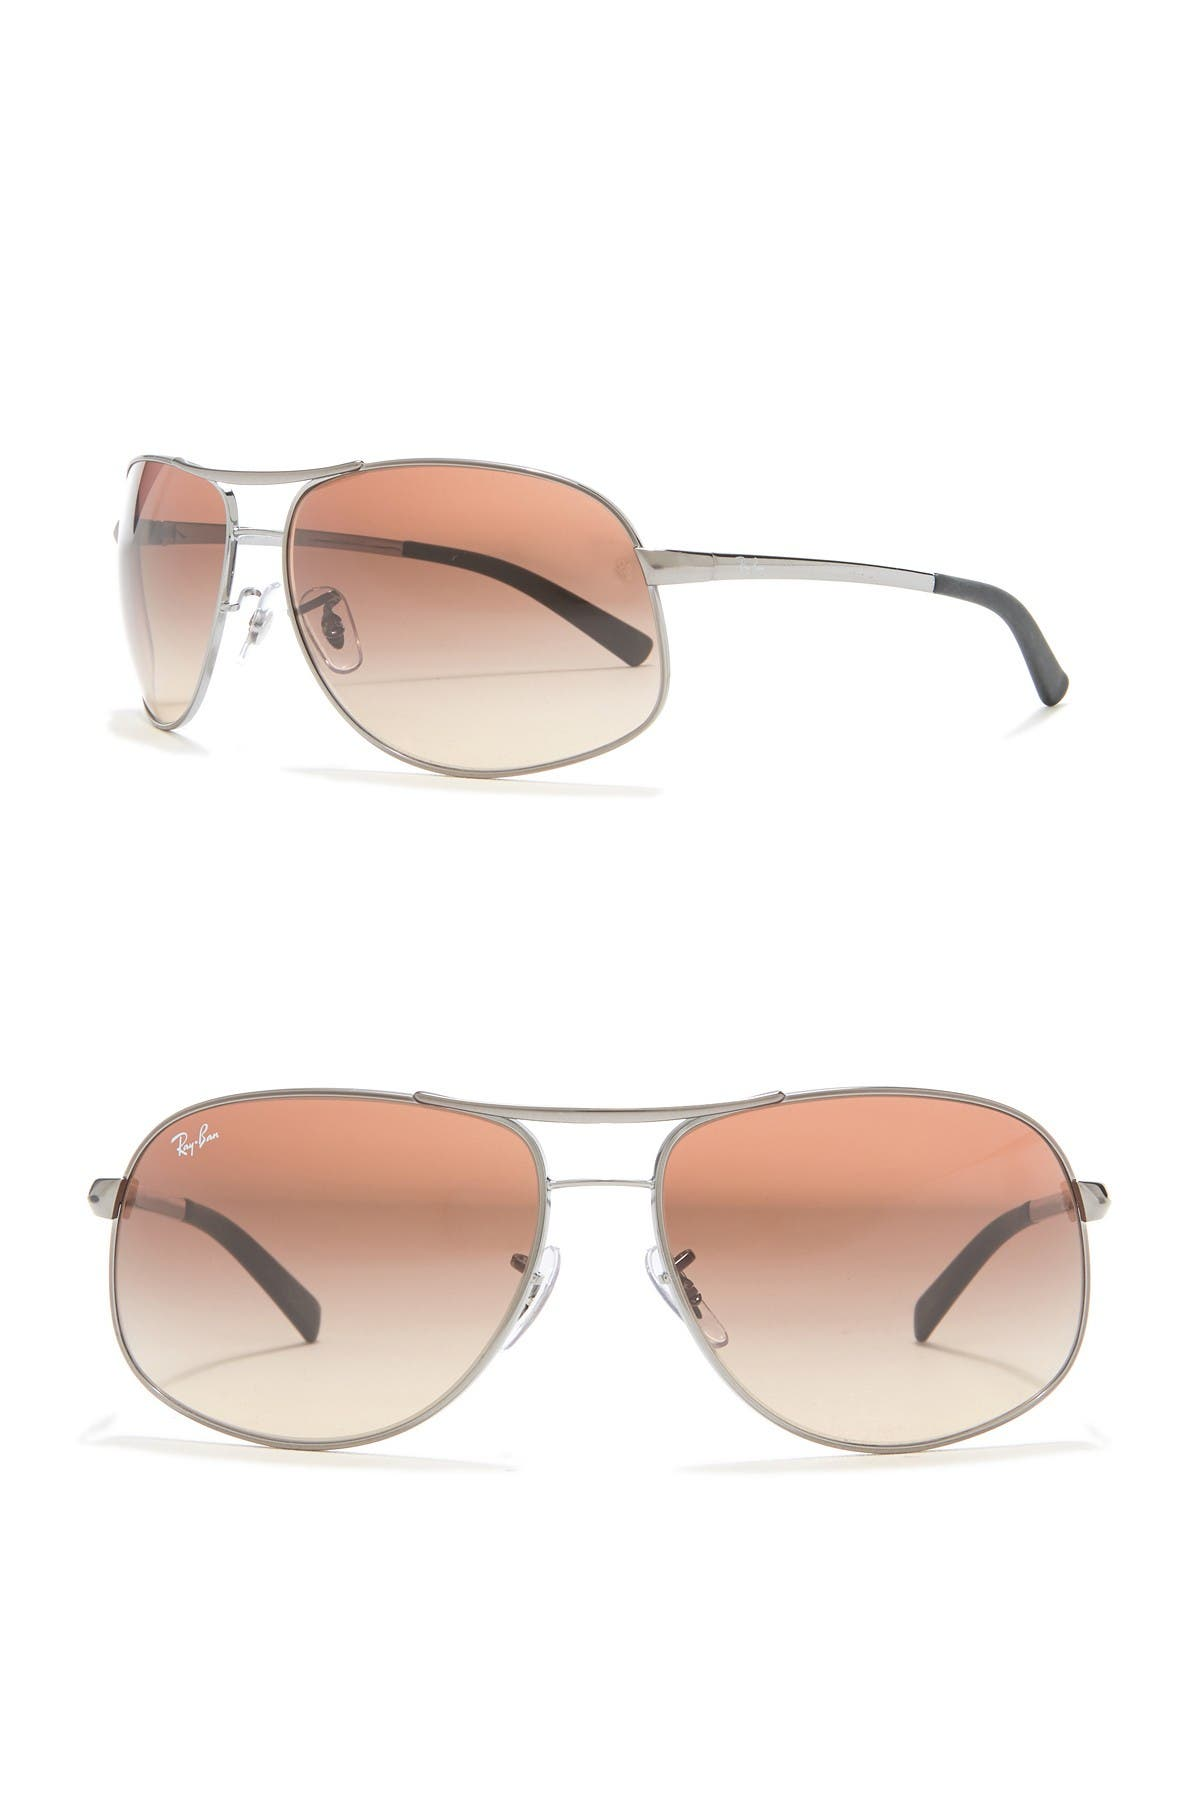 Image of Ray-Ban Gradient Pilot 64mm Sunglasses